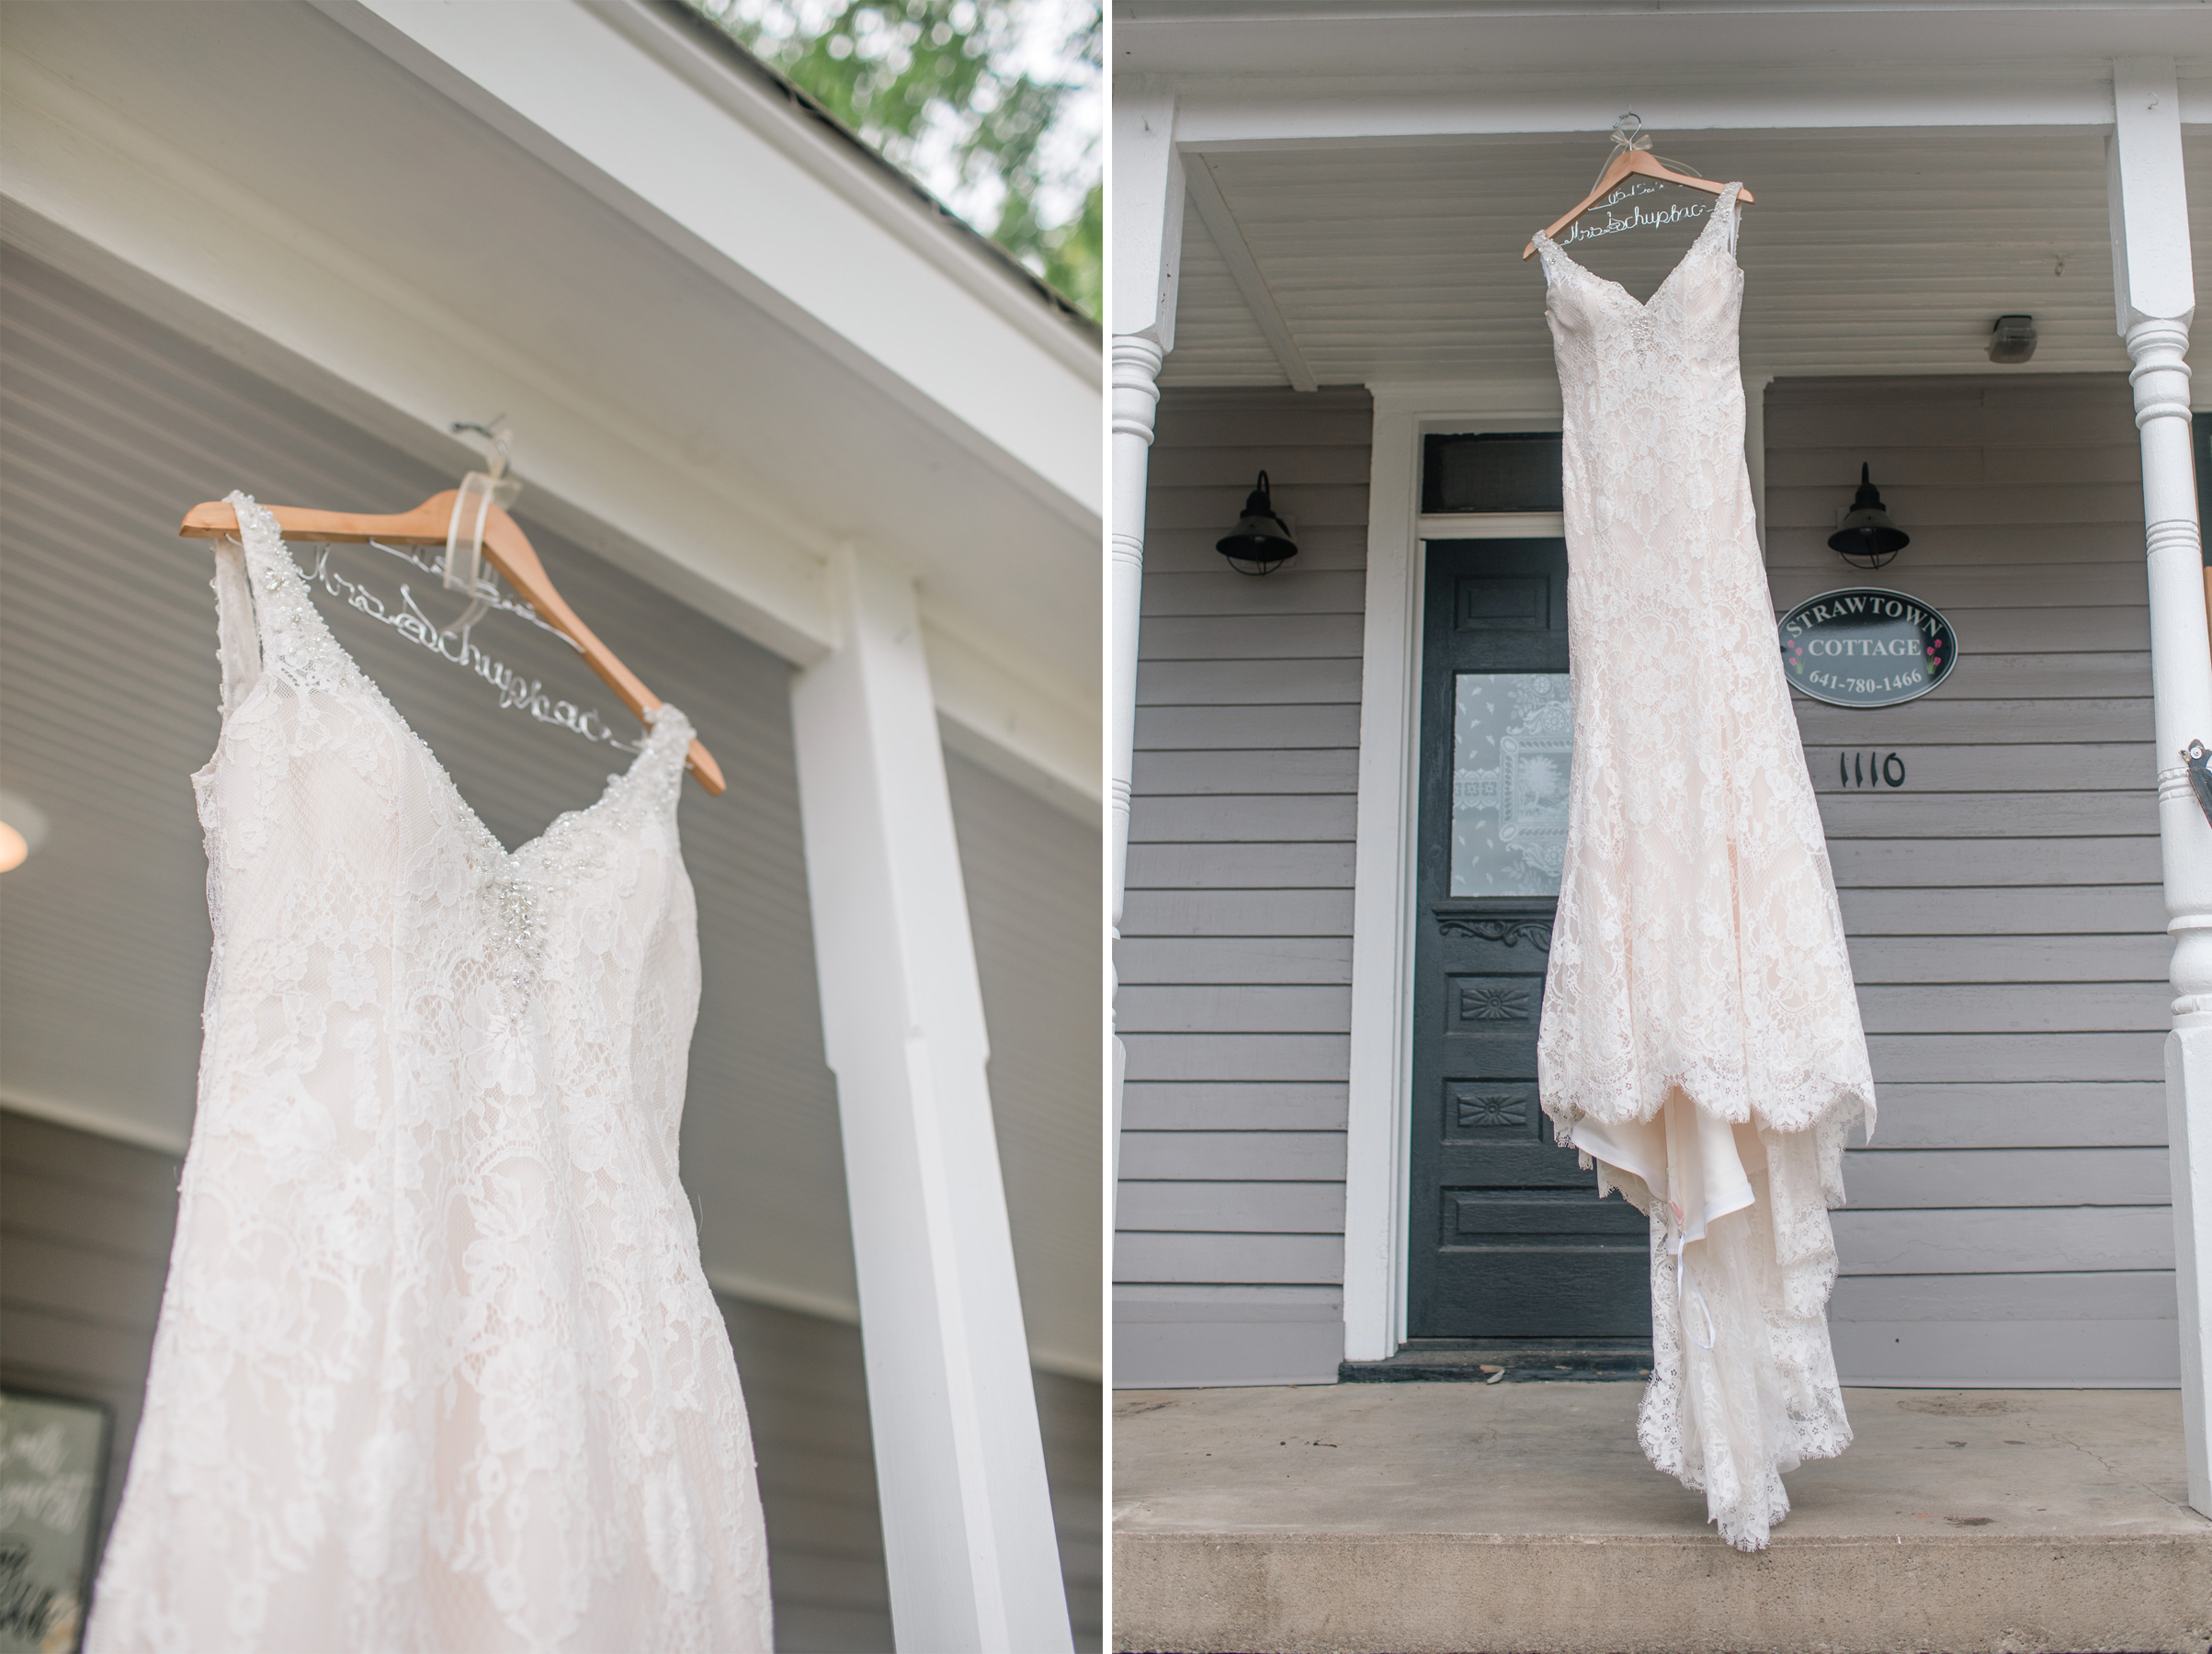 wedding dress hanging from cottage porch